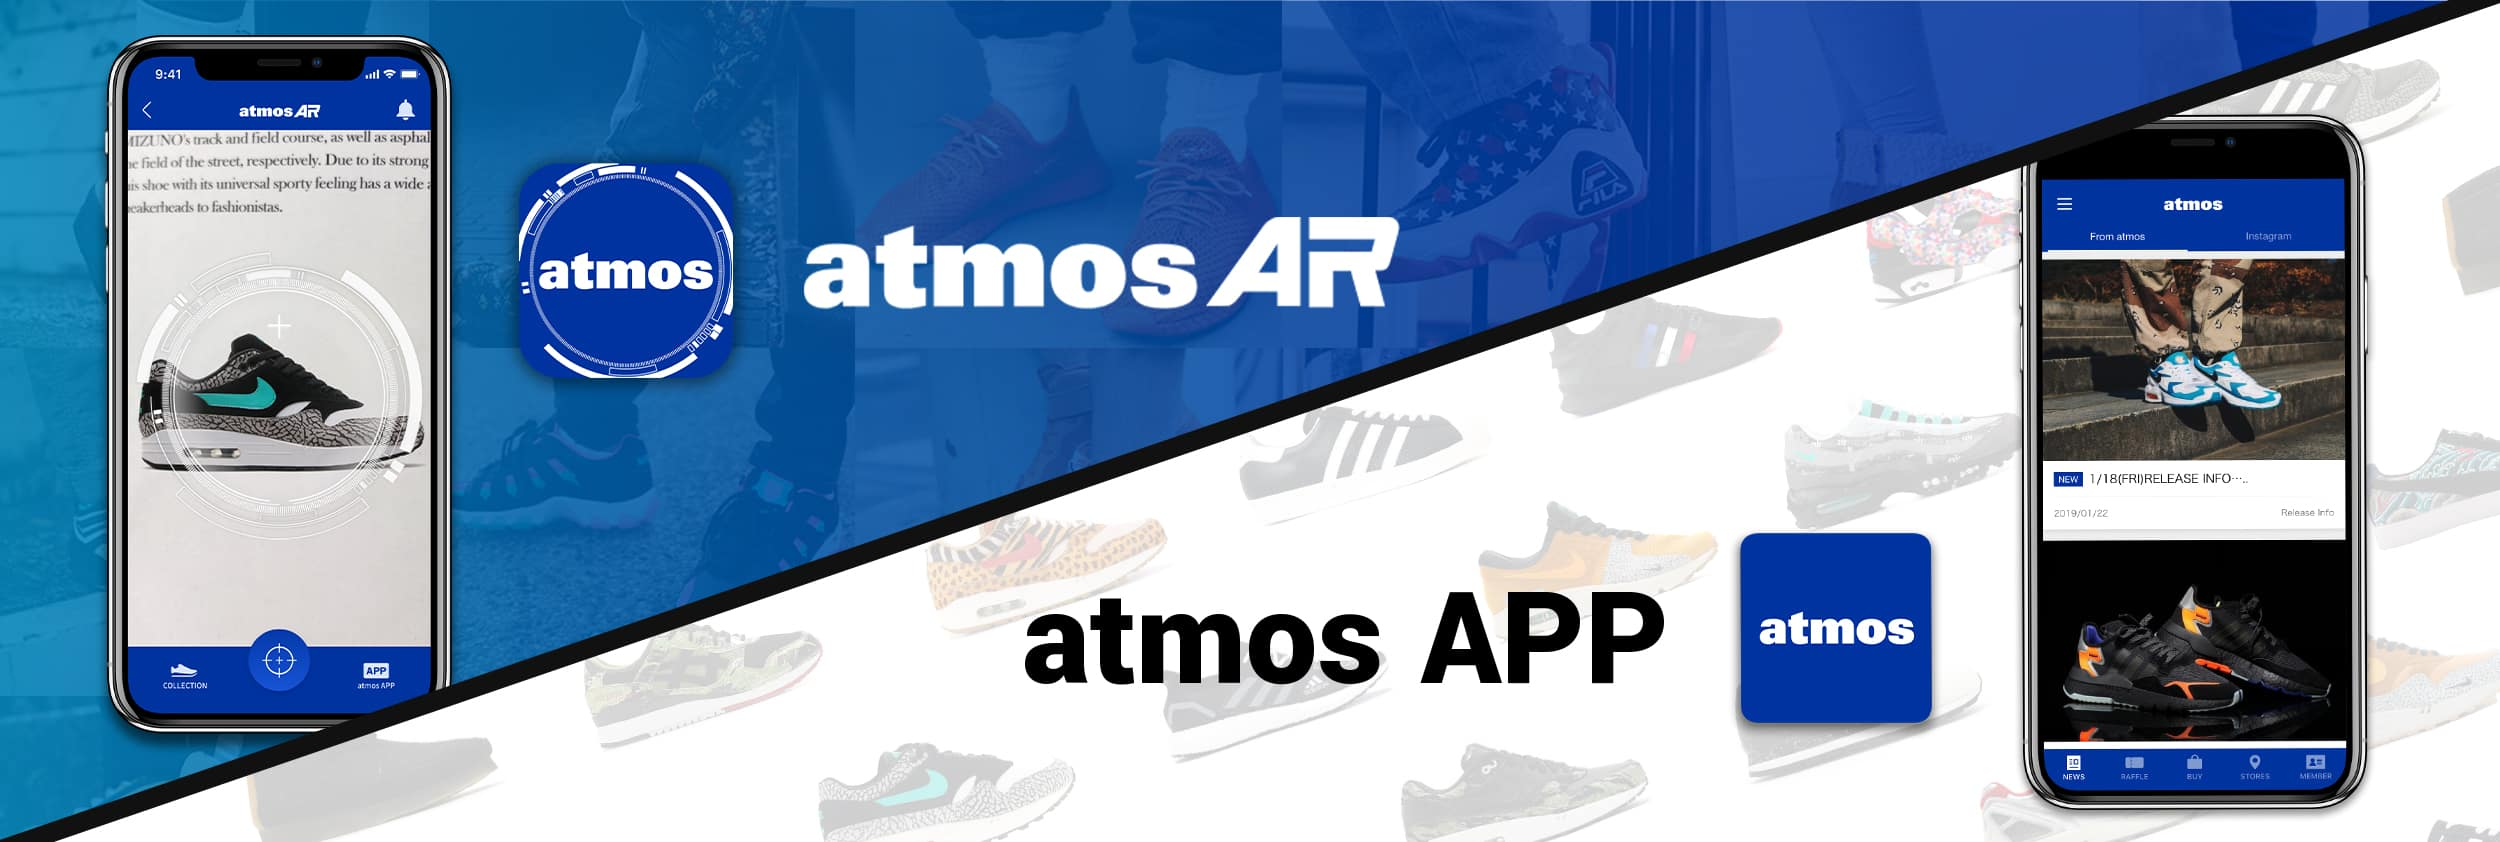 atmos APP